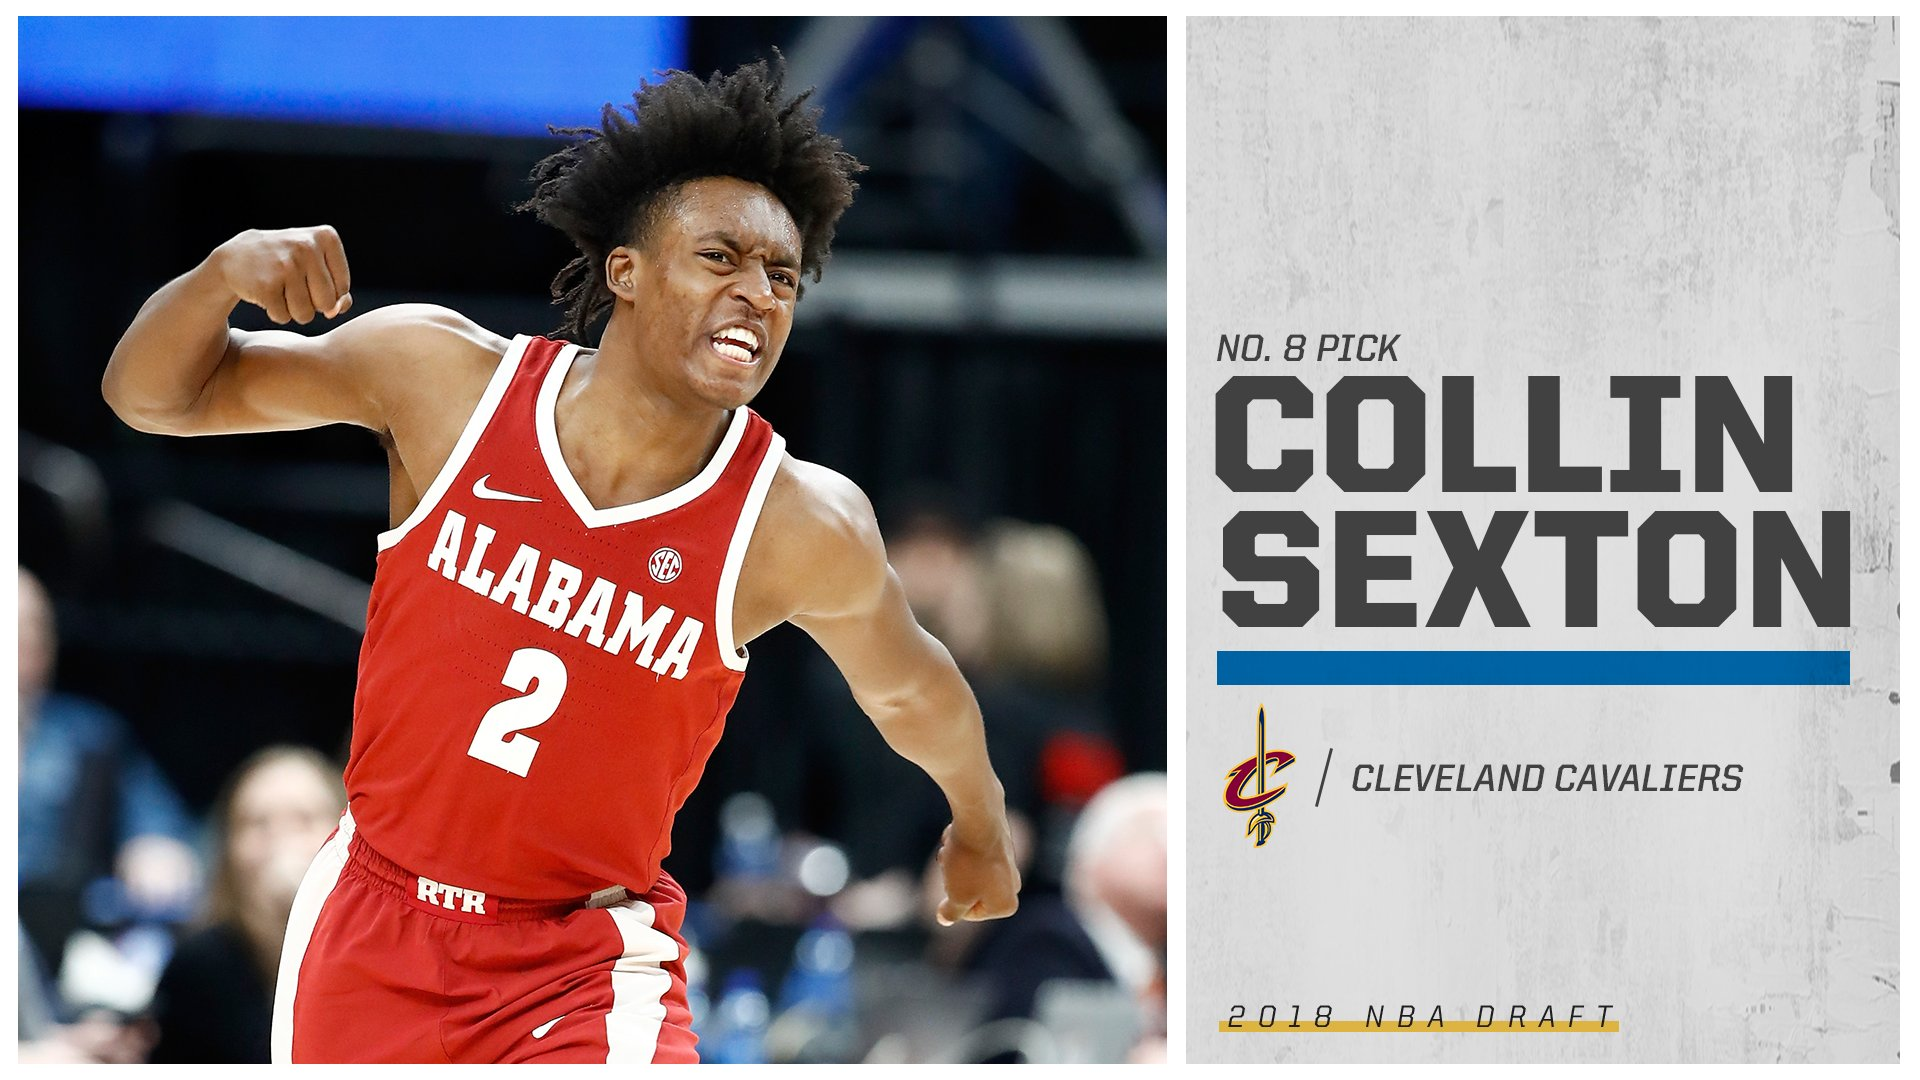 The Cleveland Cavaliers select Collin Sexton at No. 8! https://t.co/E43WoEsE2g